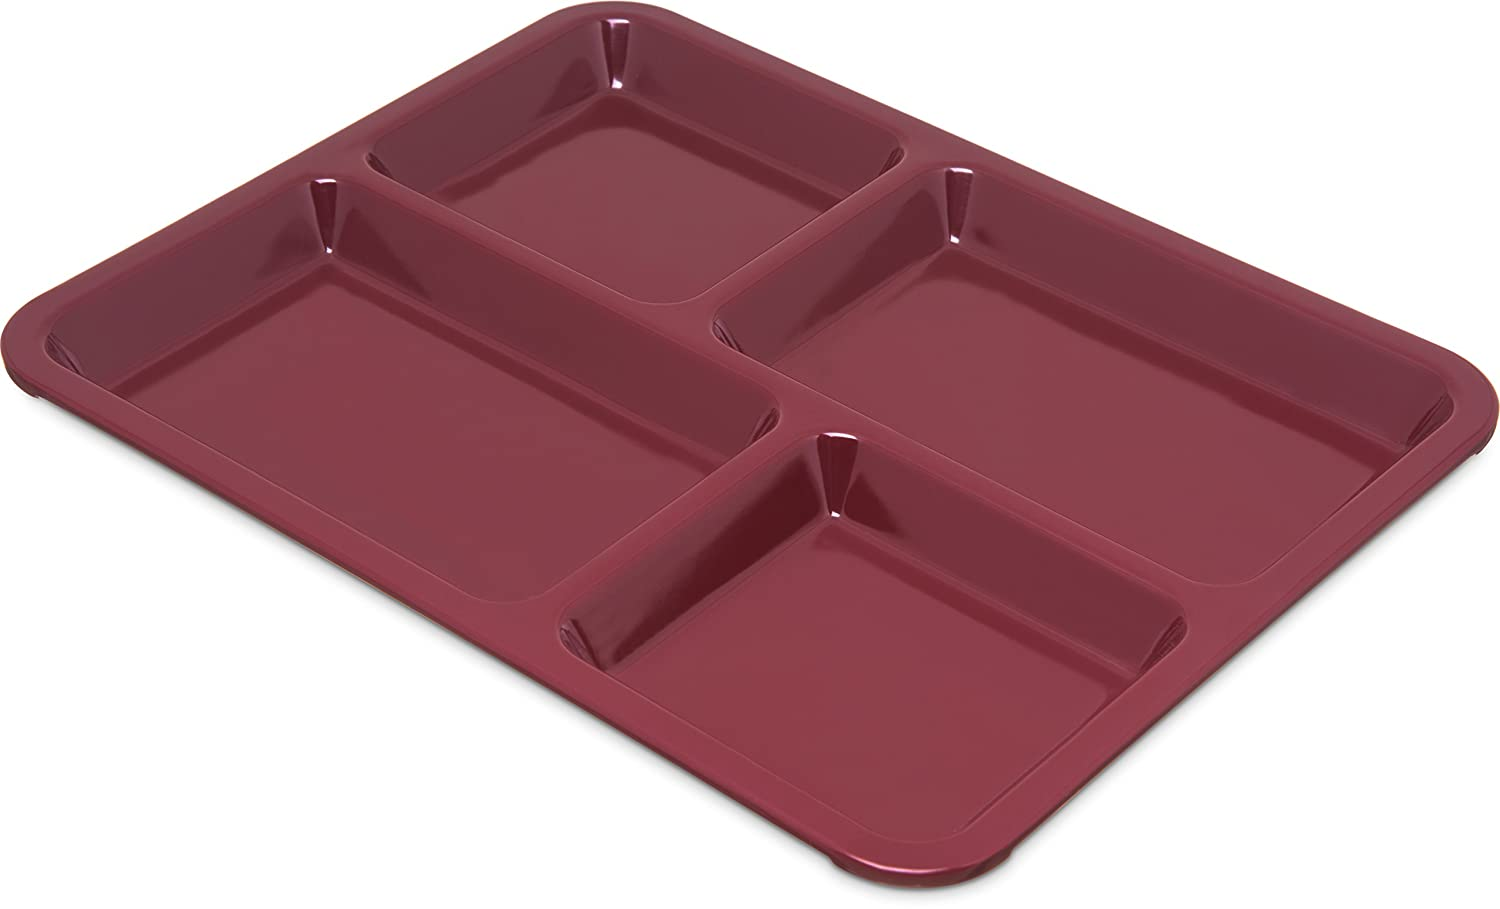 Carlisle KL44485 Right Hand 4-Compartment Cafeteria / Fast Food Tray, 8.5